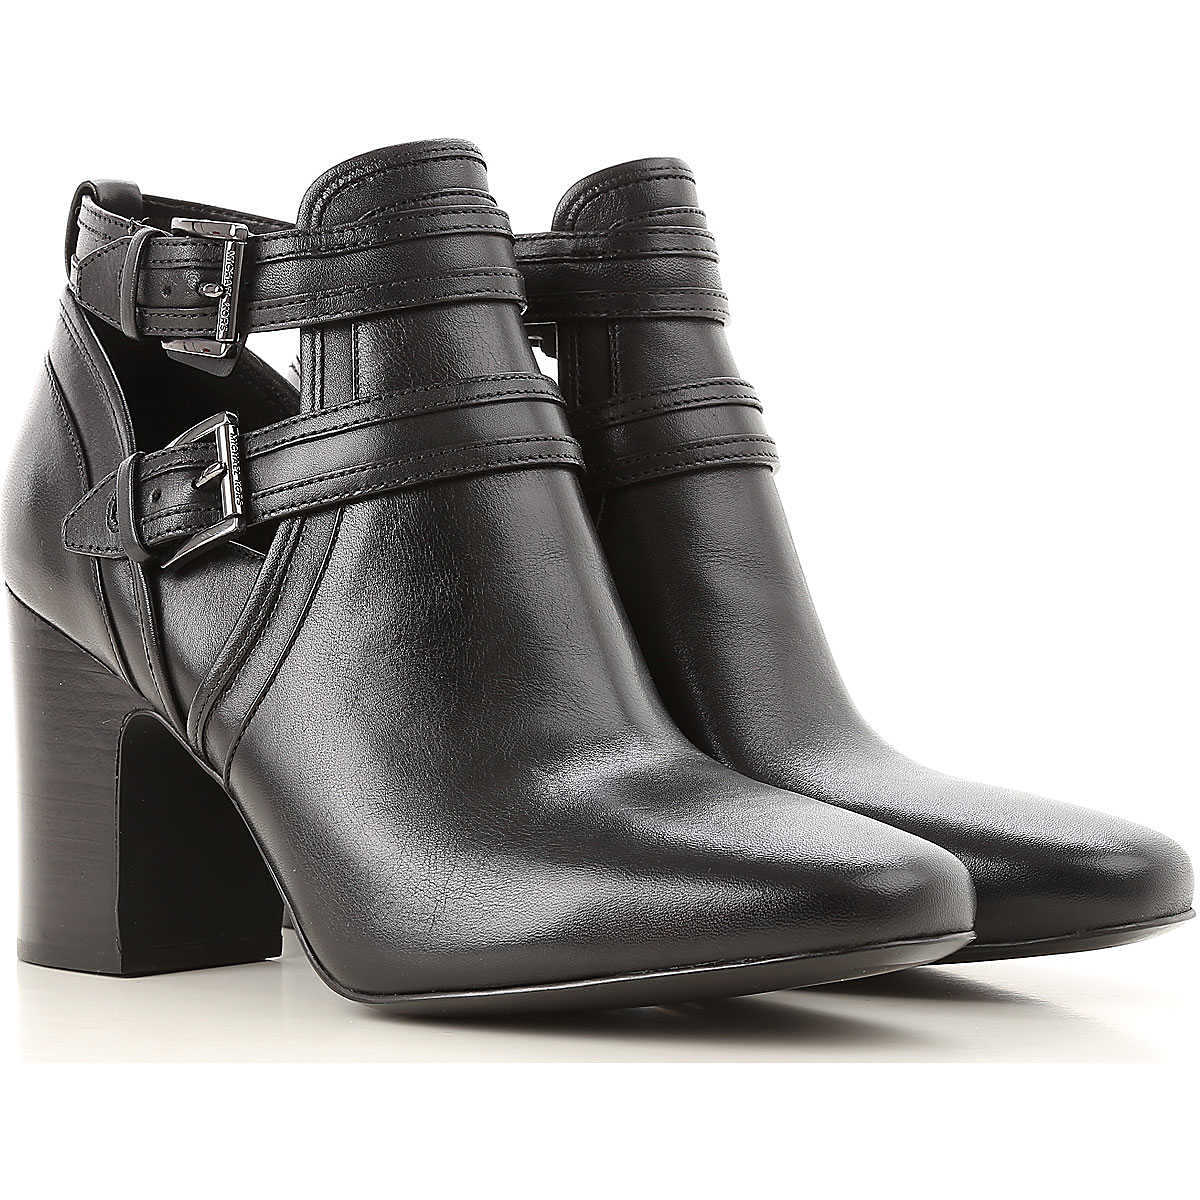 Michael Kors Boots for Women 4 5.5 6 Booties On Sale in Outlet UK - GOOFASH